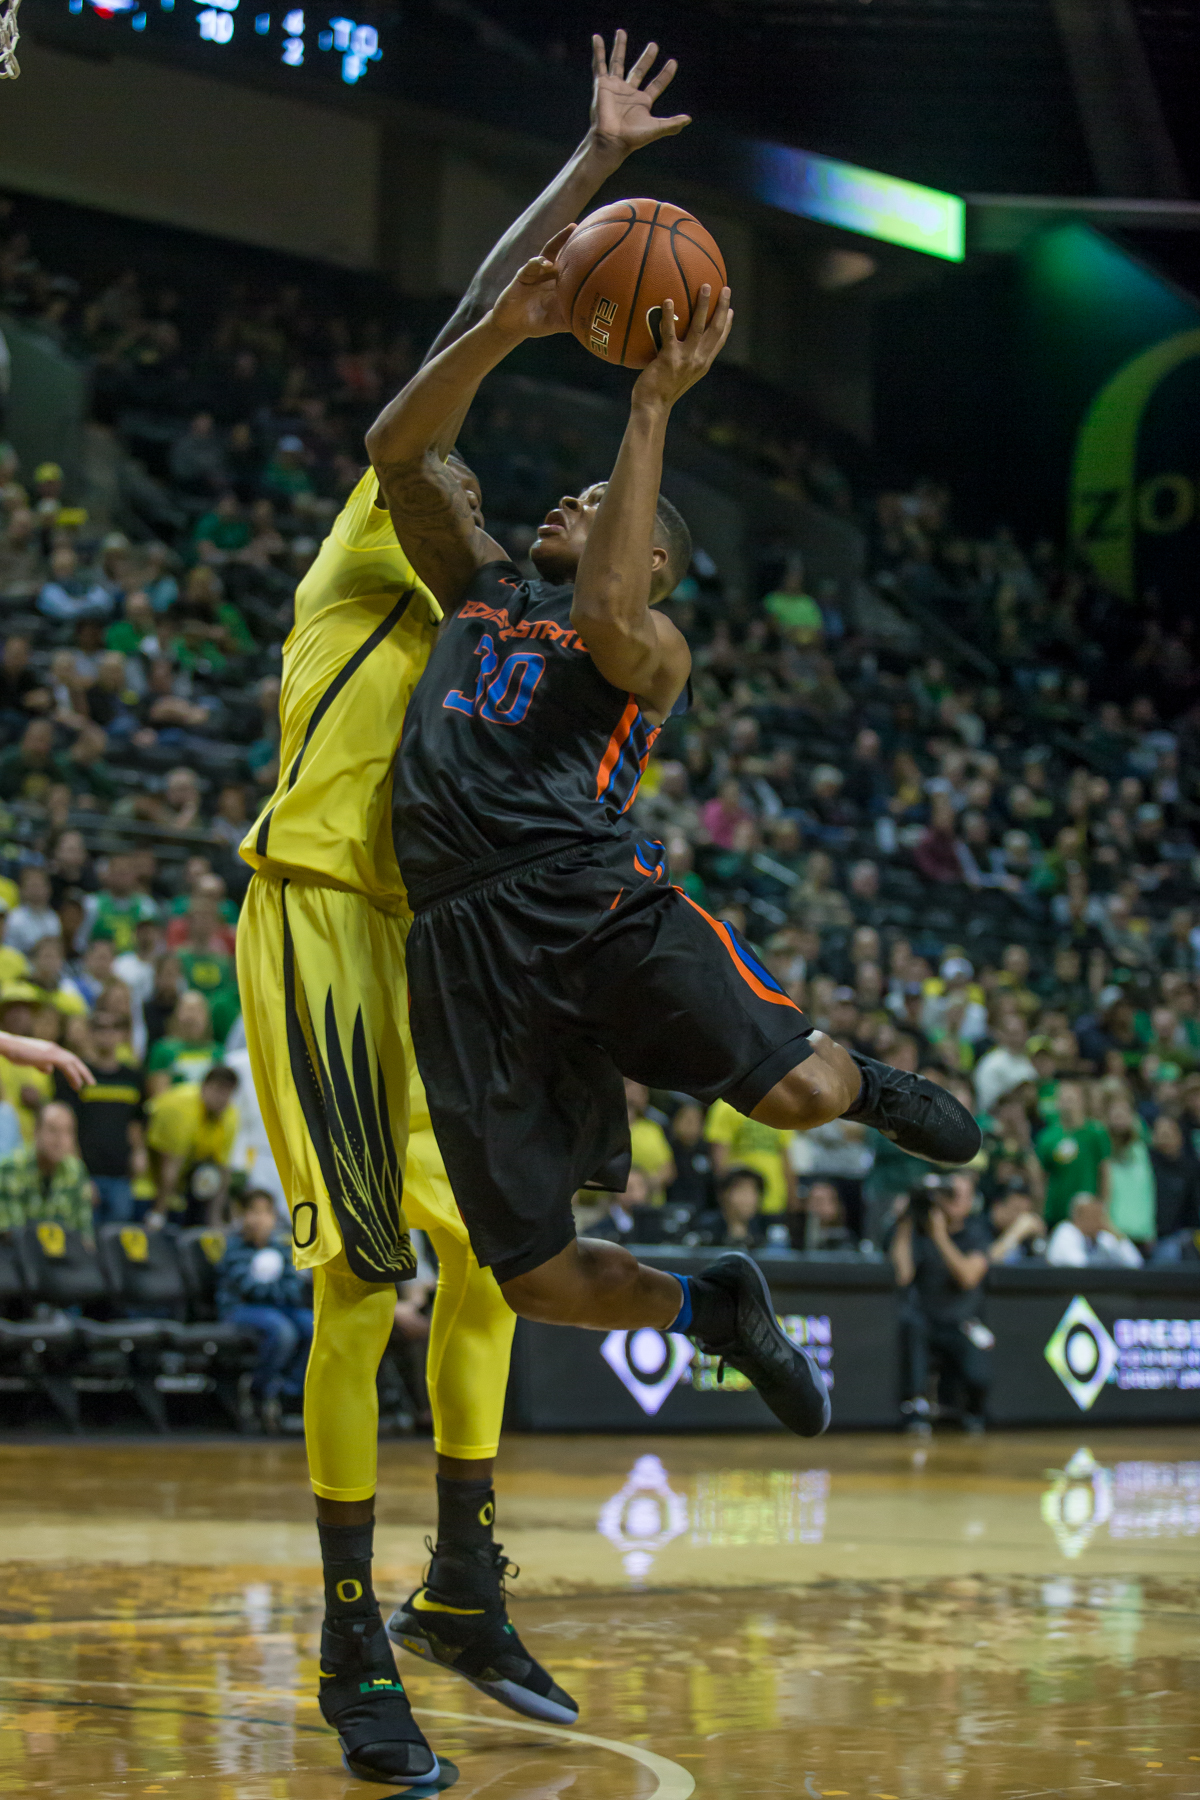 Boise State guard Paris Austin (#30) leans into Oregon forward Chris Boucher (#25) as he shoots a layup. After trailing for most of the game, the Oregon Ducks defeated the Boise State Broncos 68-63. Photo by Dillon Vibes